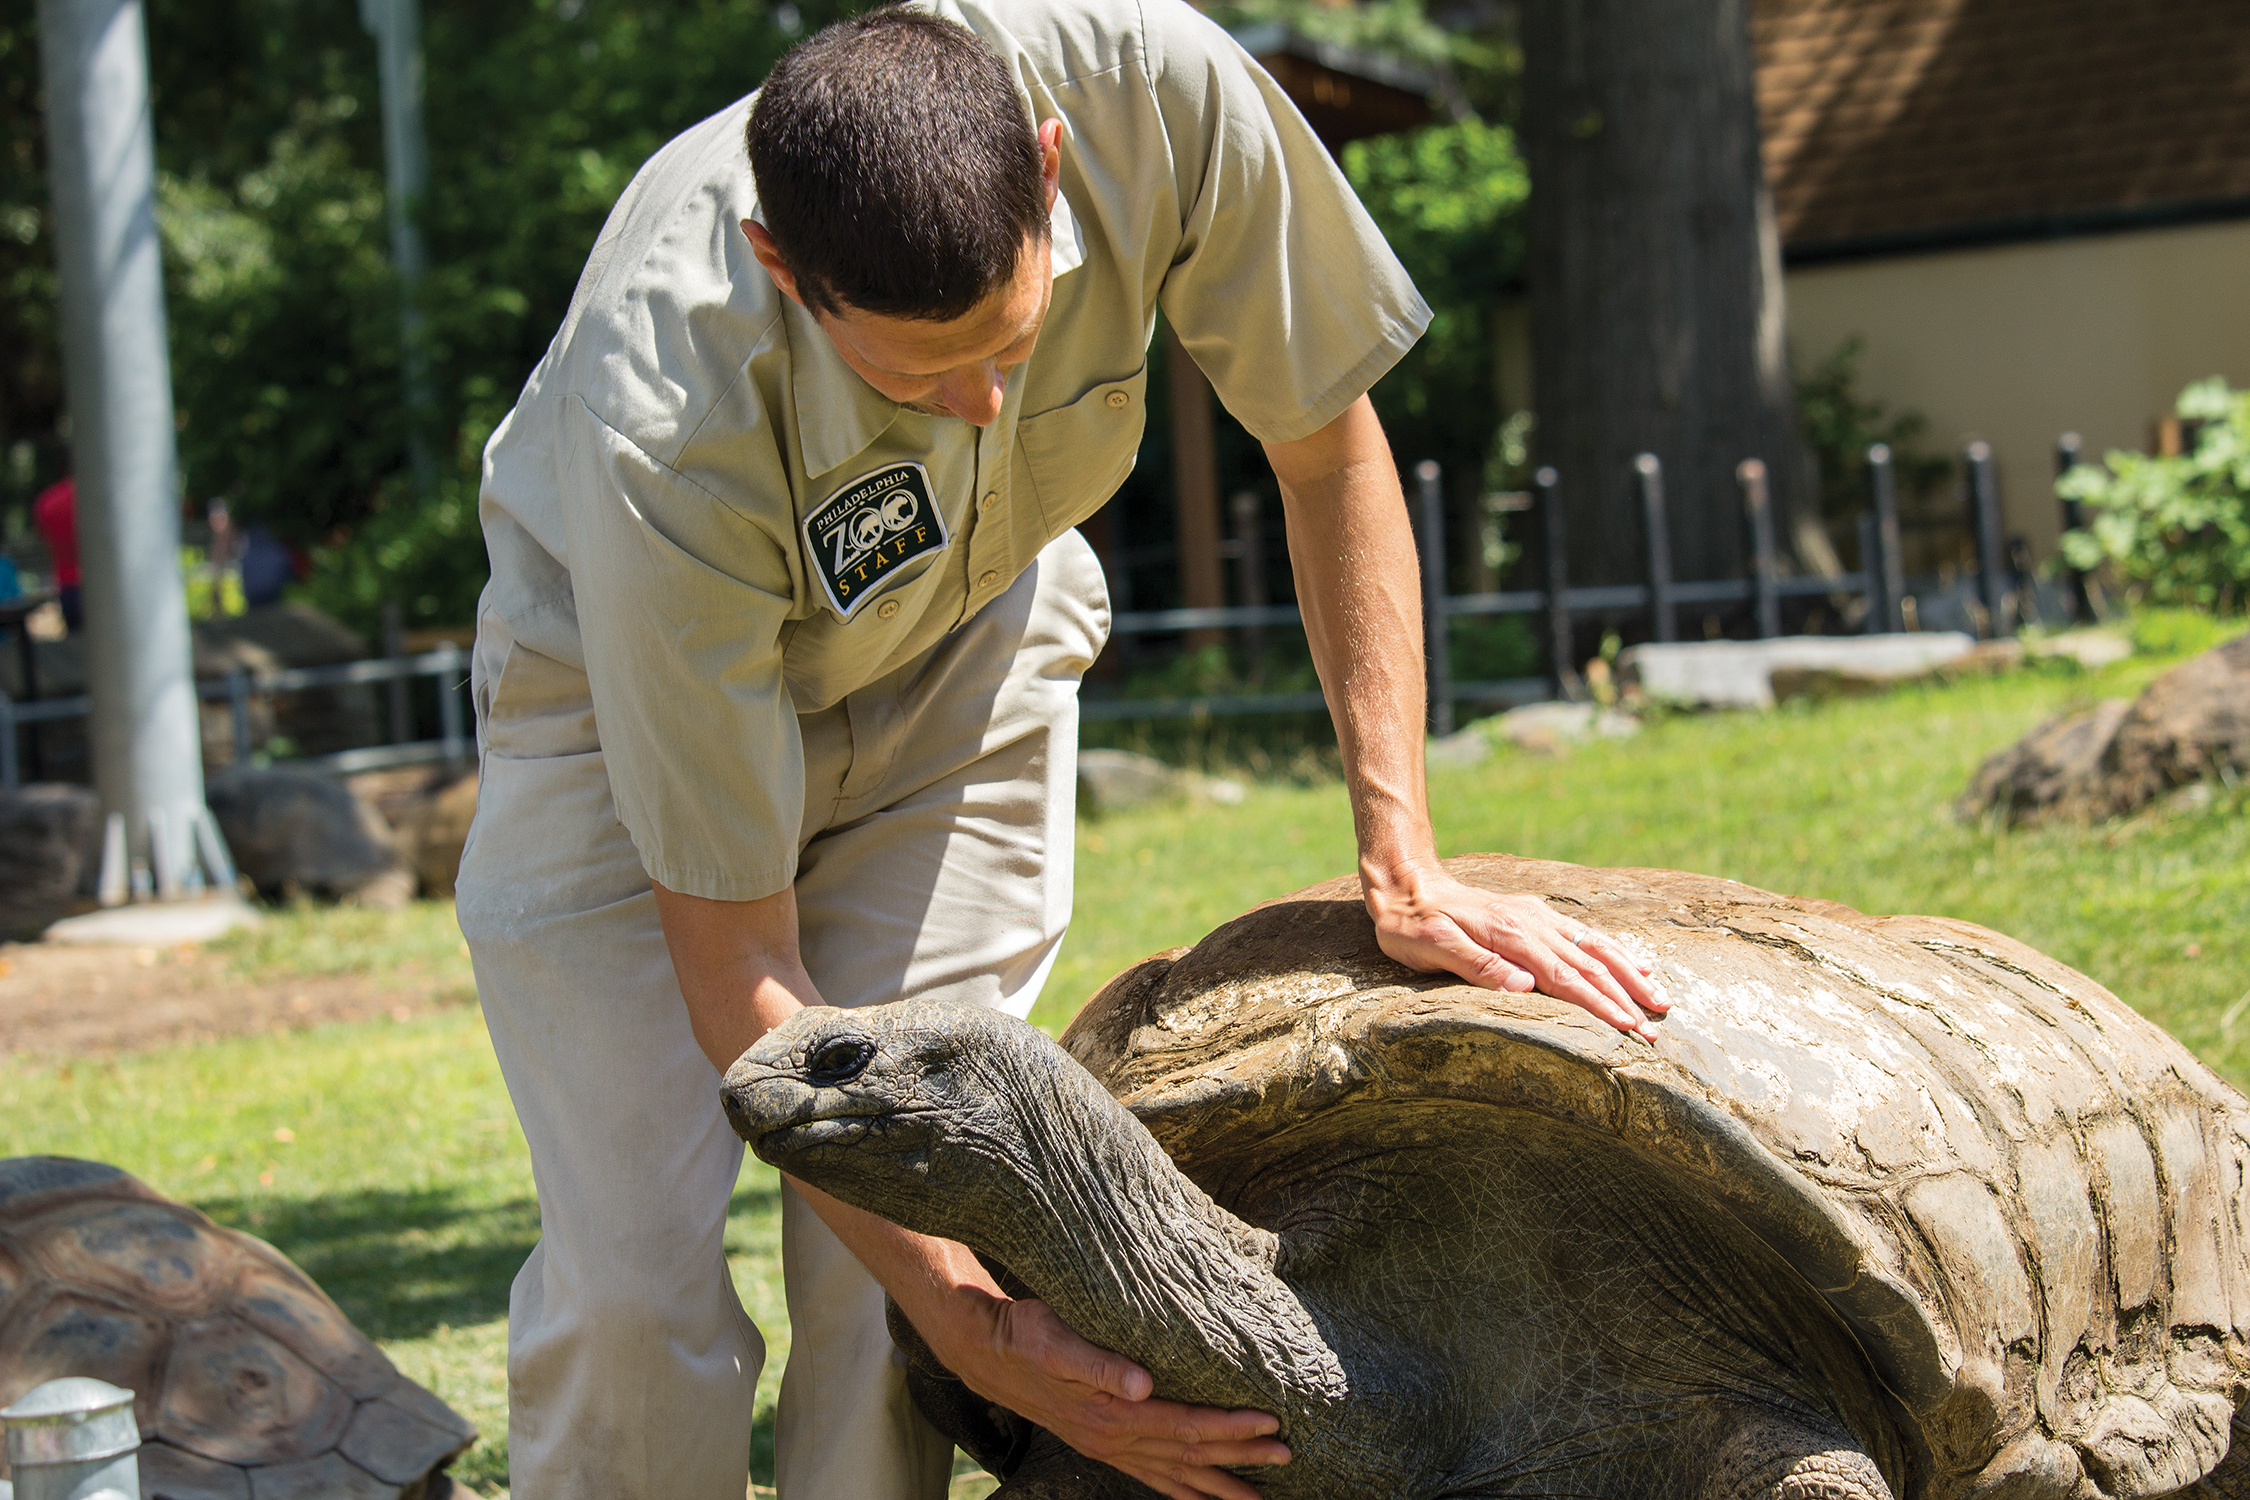 Keeper with Tortoise